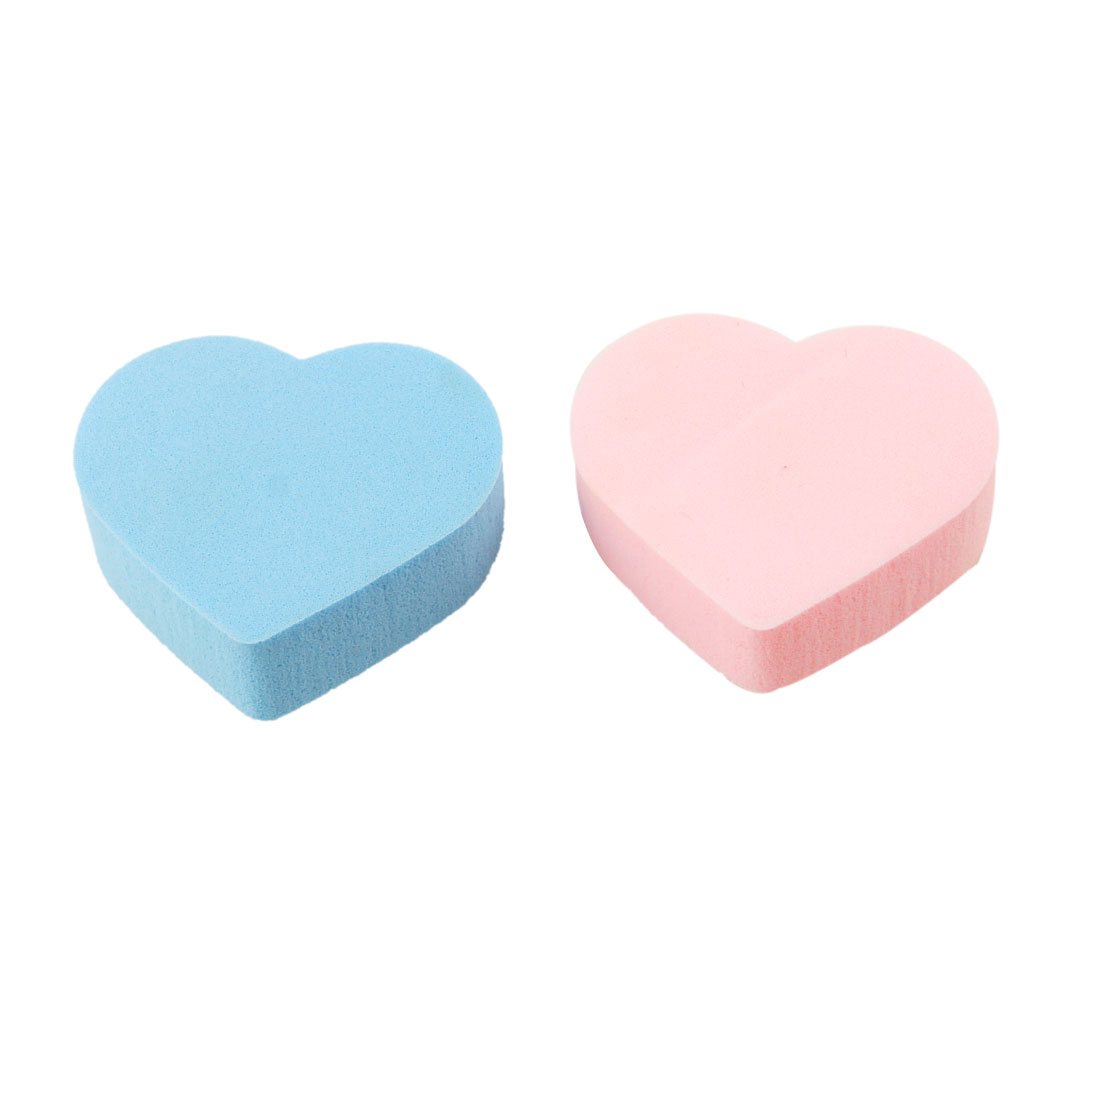 2 Pcs Pink Blue Heart Shaped Face Care Powder Puff Cosmetic Makeup Sponge